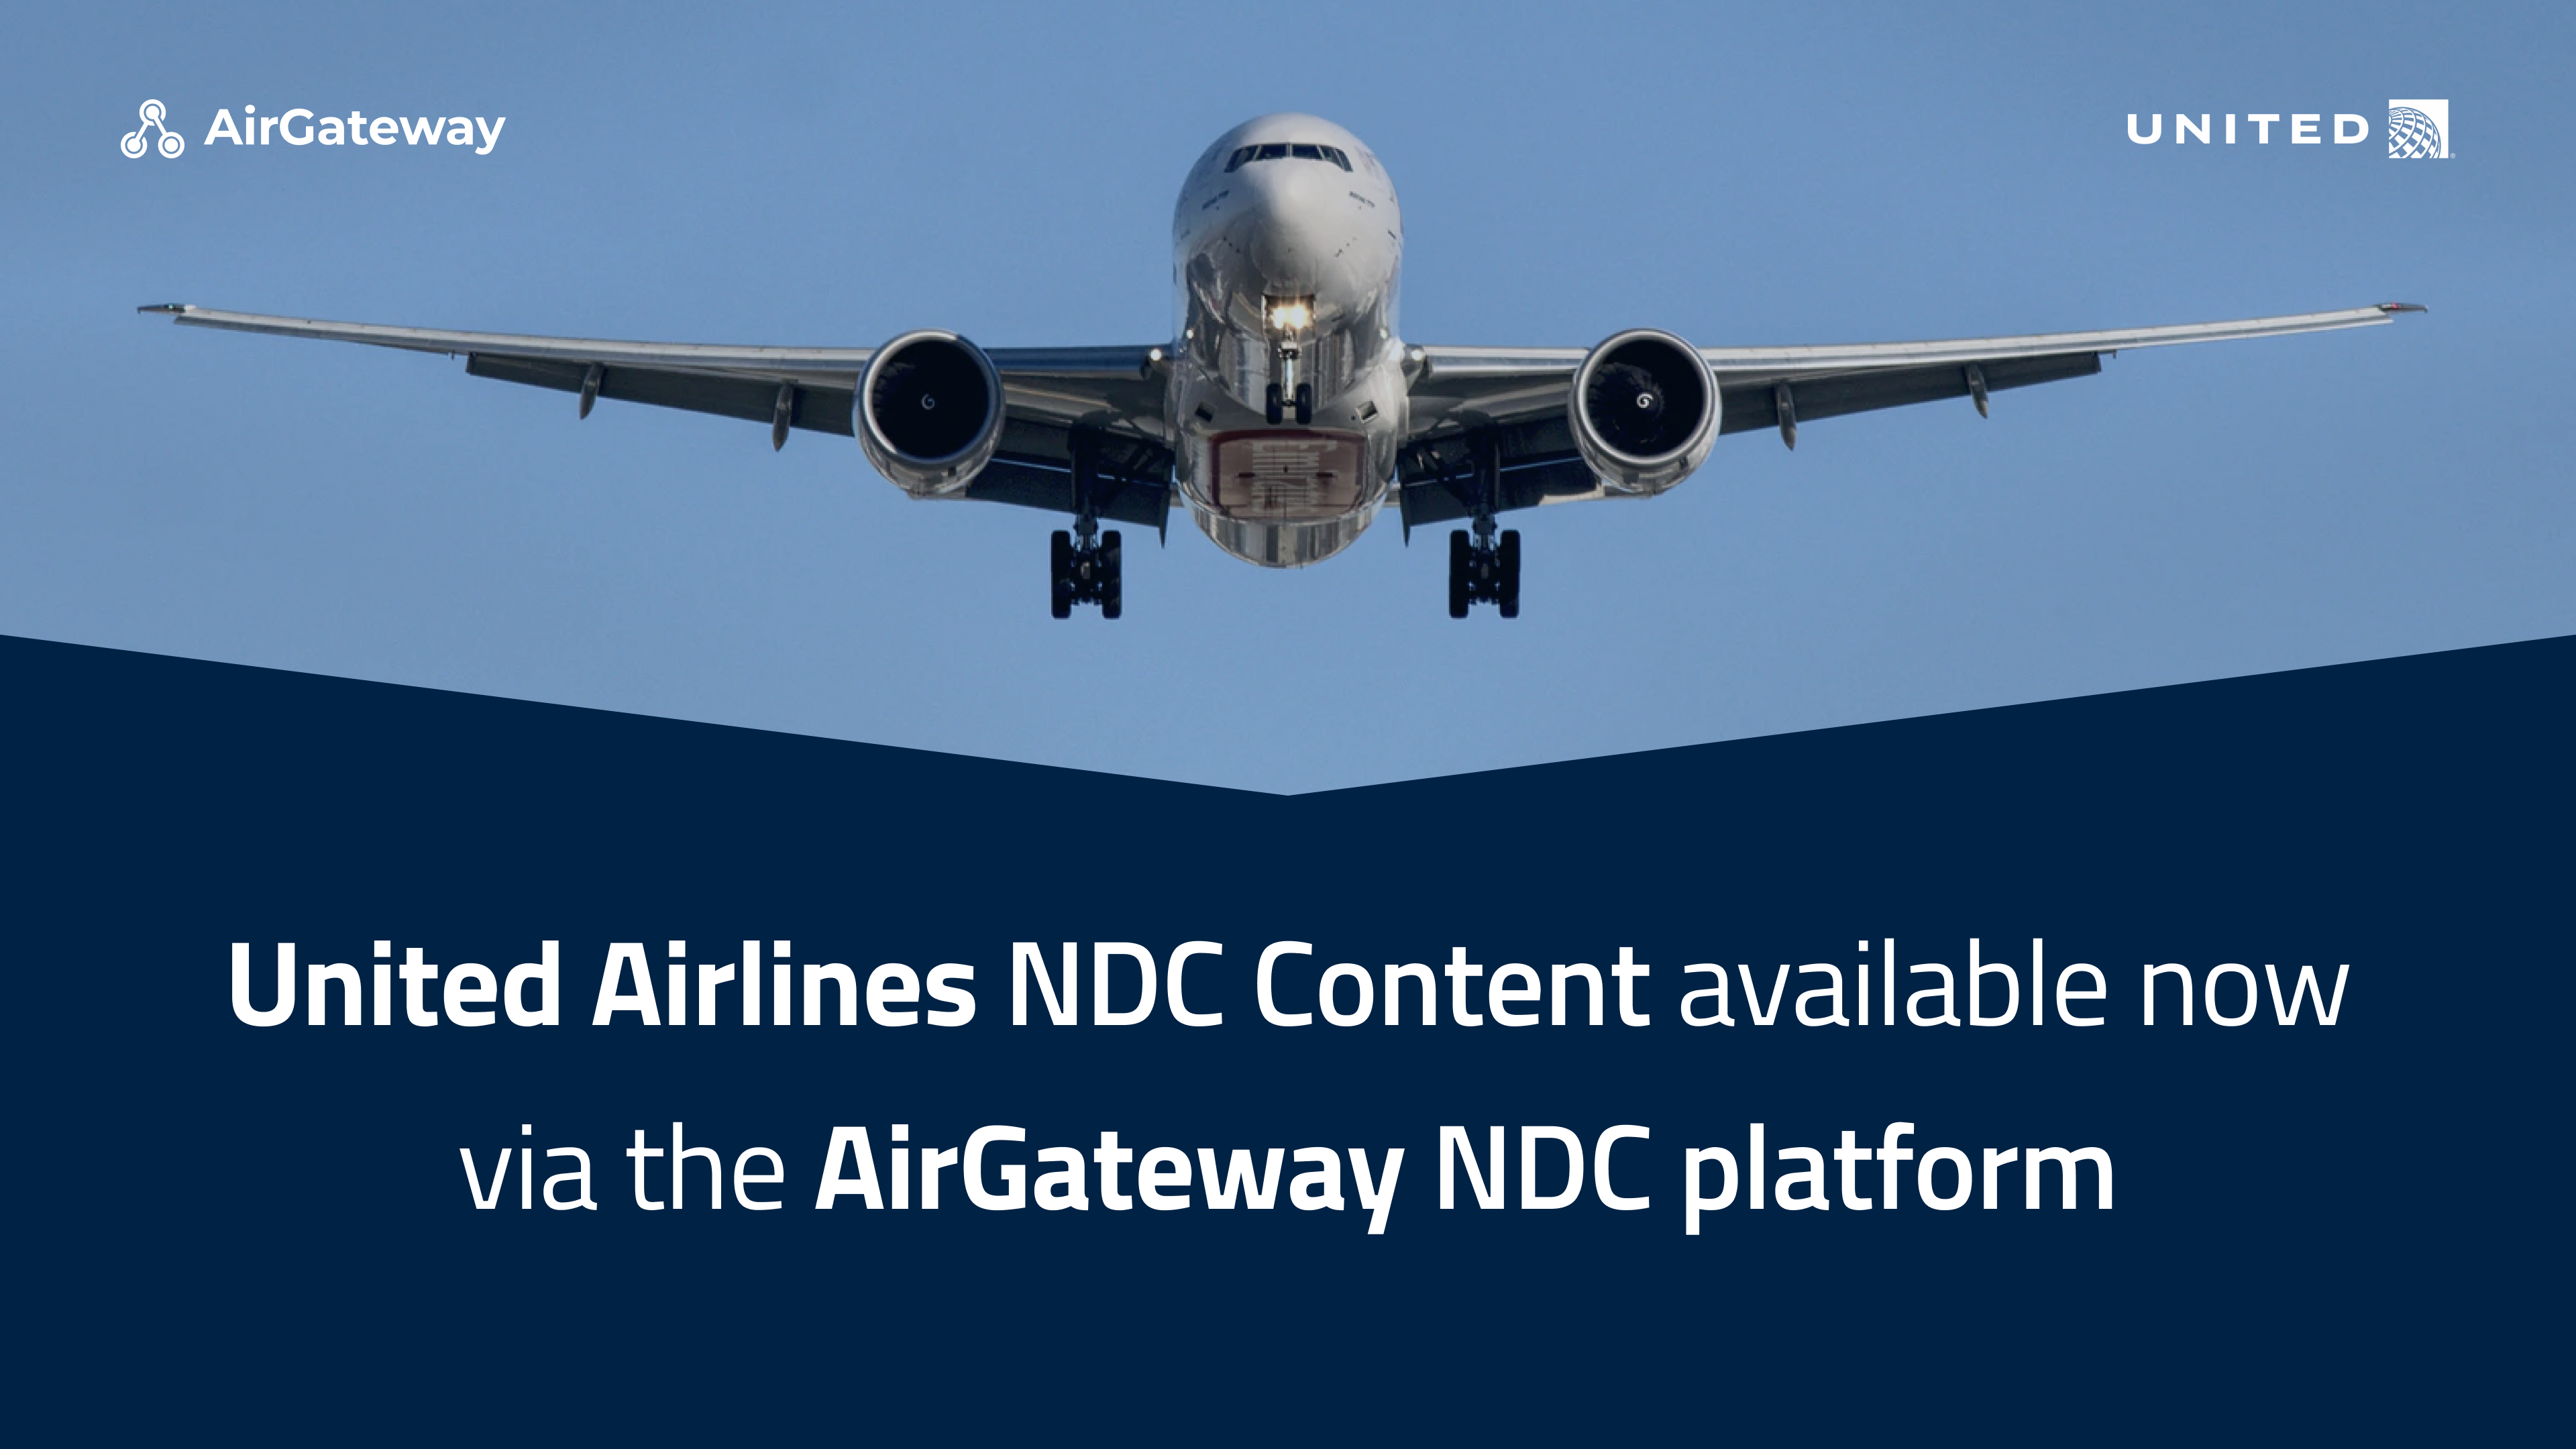 United Airlines content available in AirGateway platform